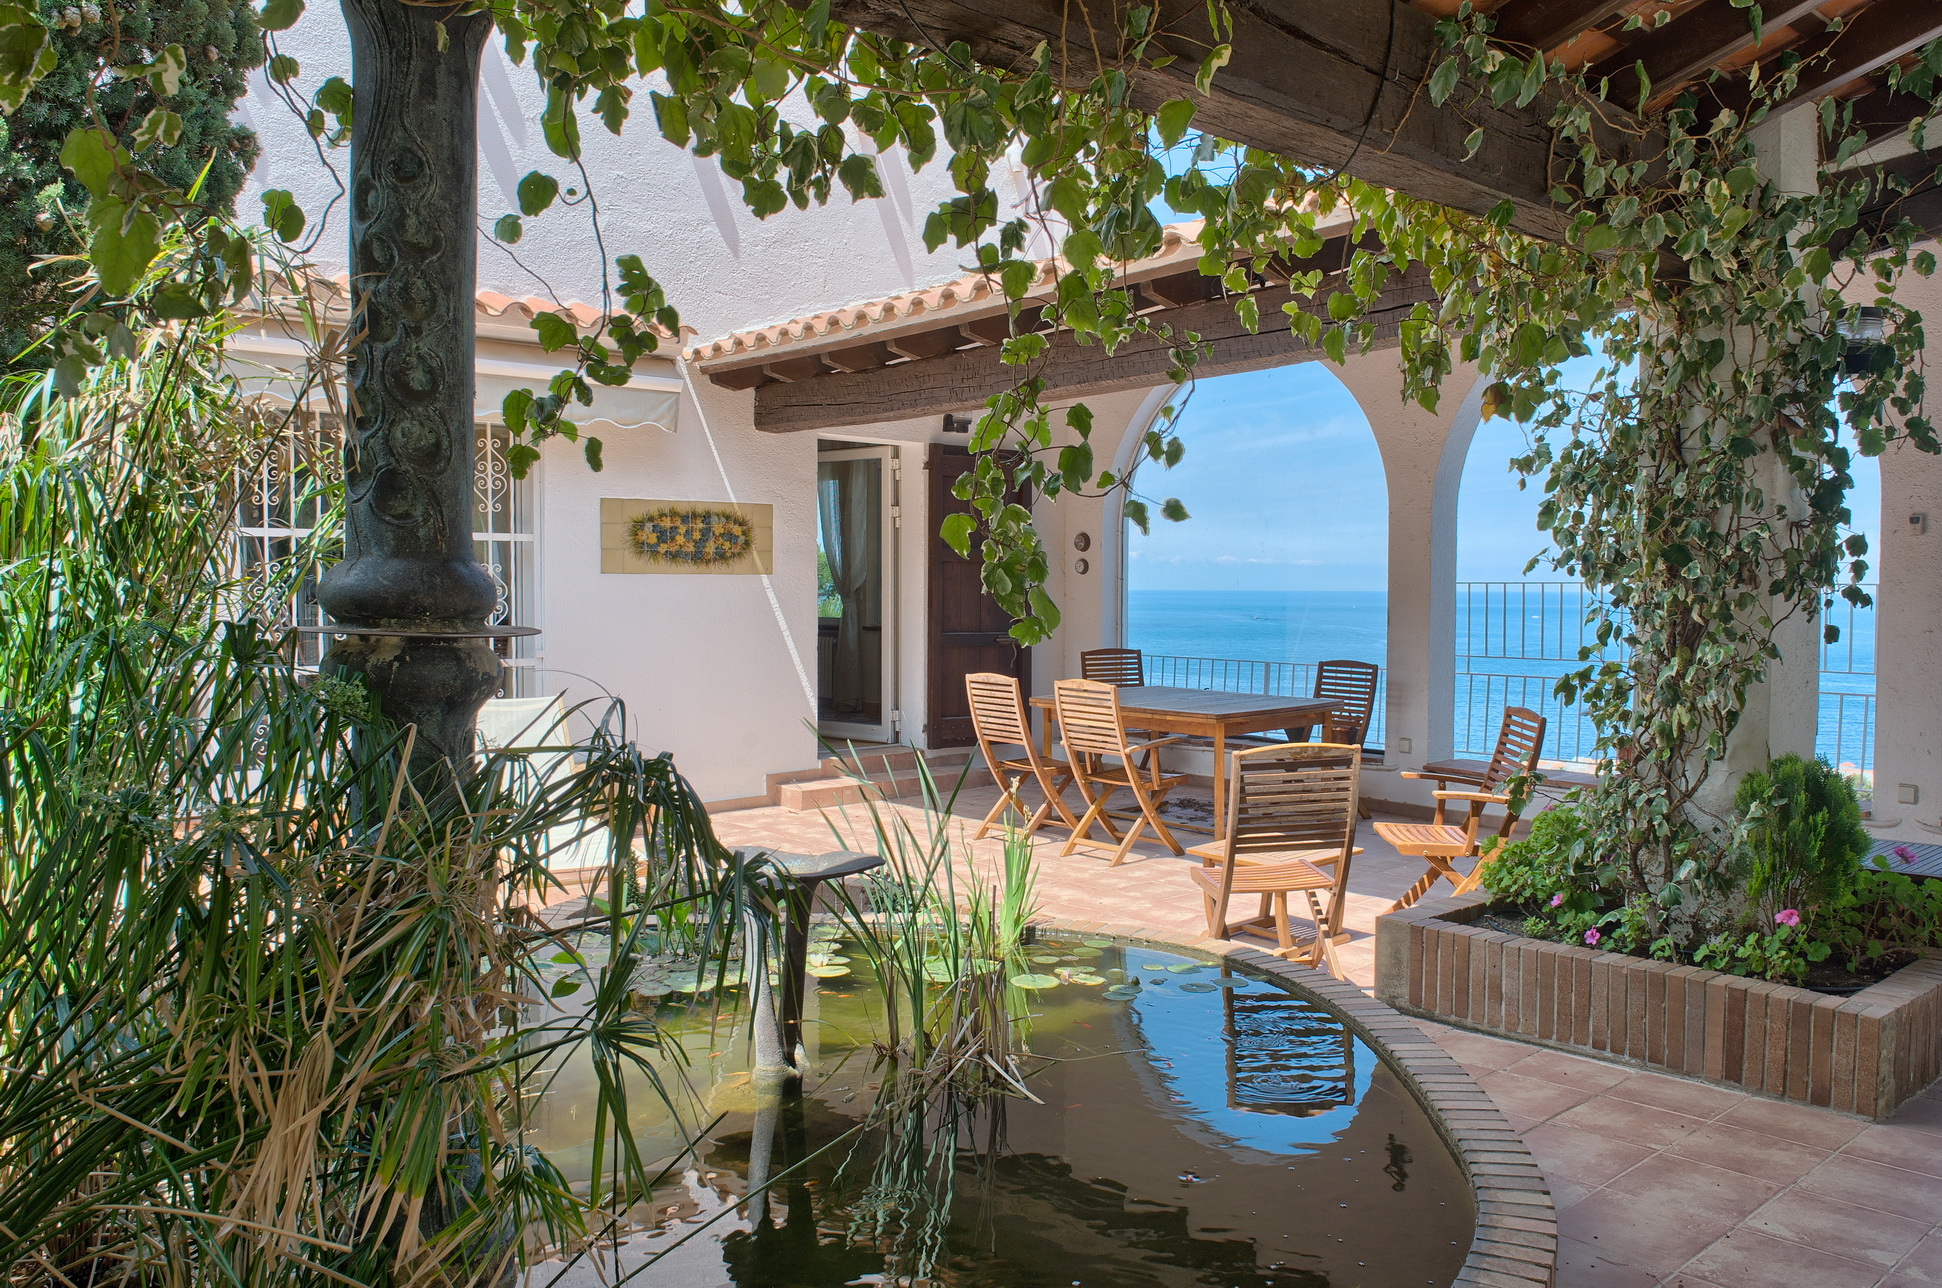 Single Family Home for Sale at Mediterranean villa with sea views Other Spain, Other Areas In Spain 17489 Spain